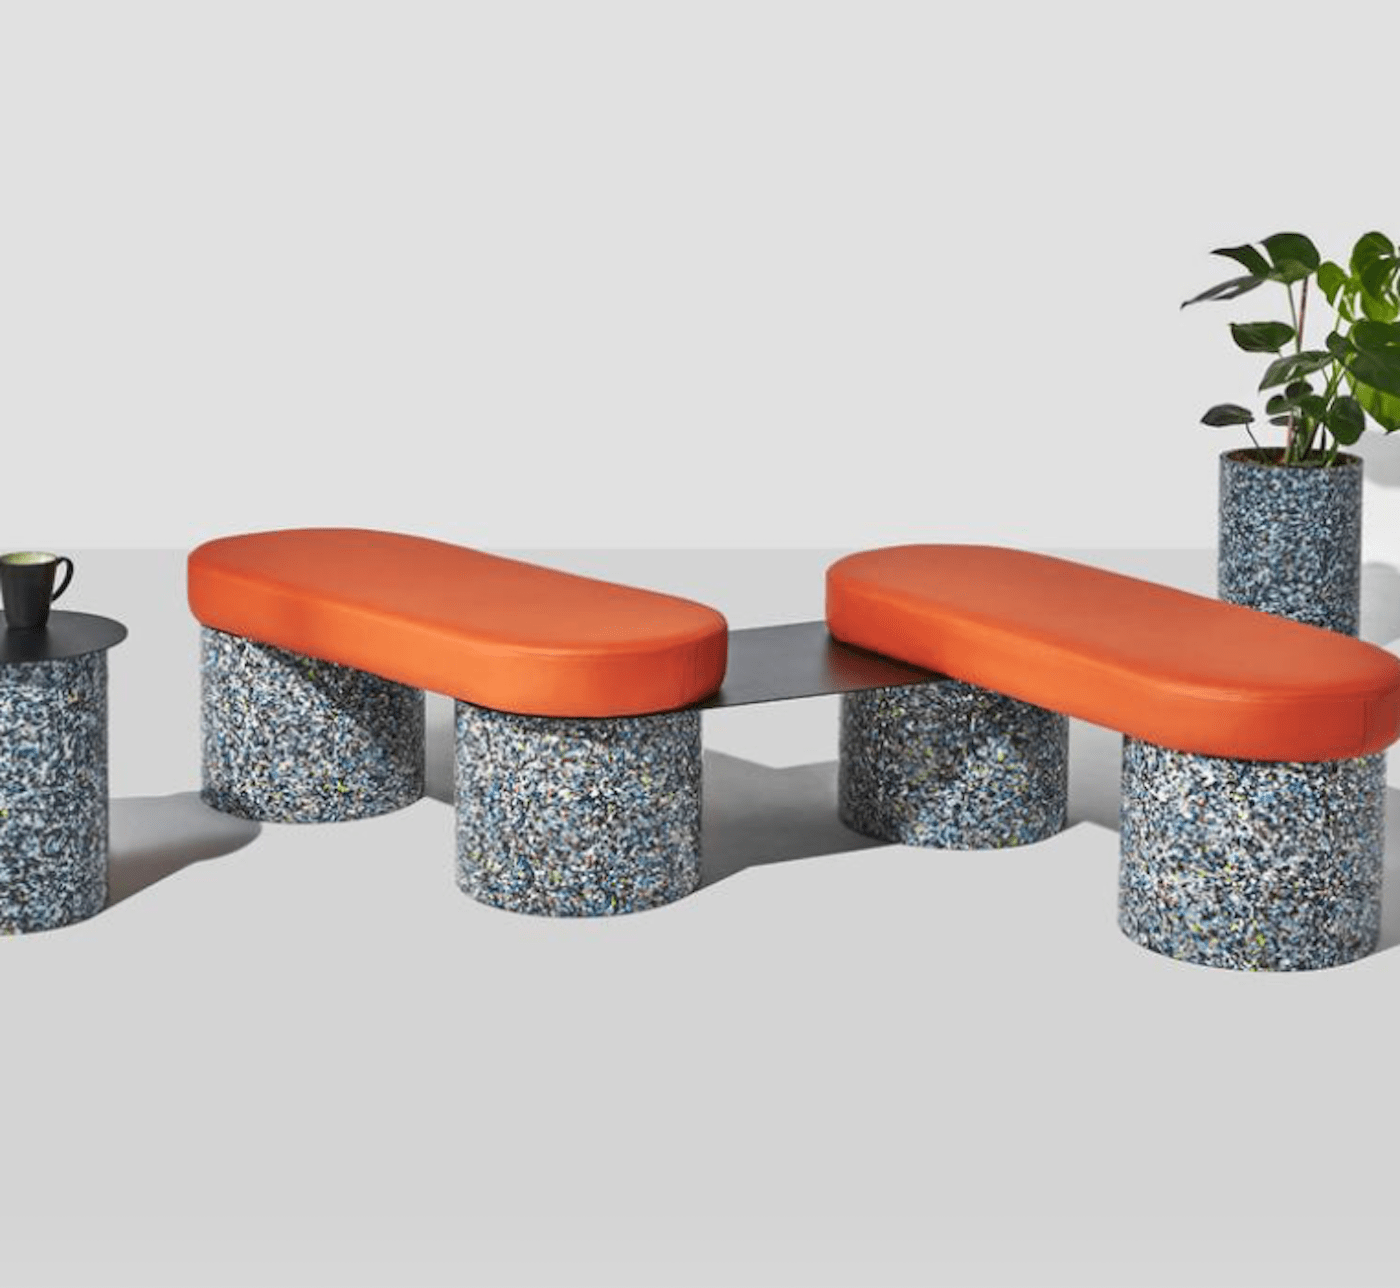 Eco Edition_Design By Them_Confetti range_Sustainable architecture interiors products 3